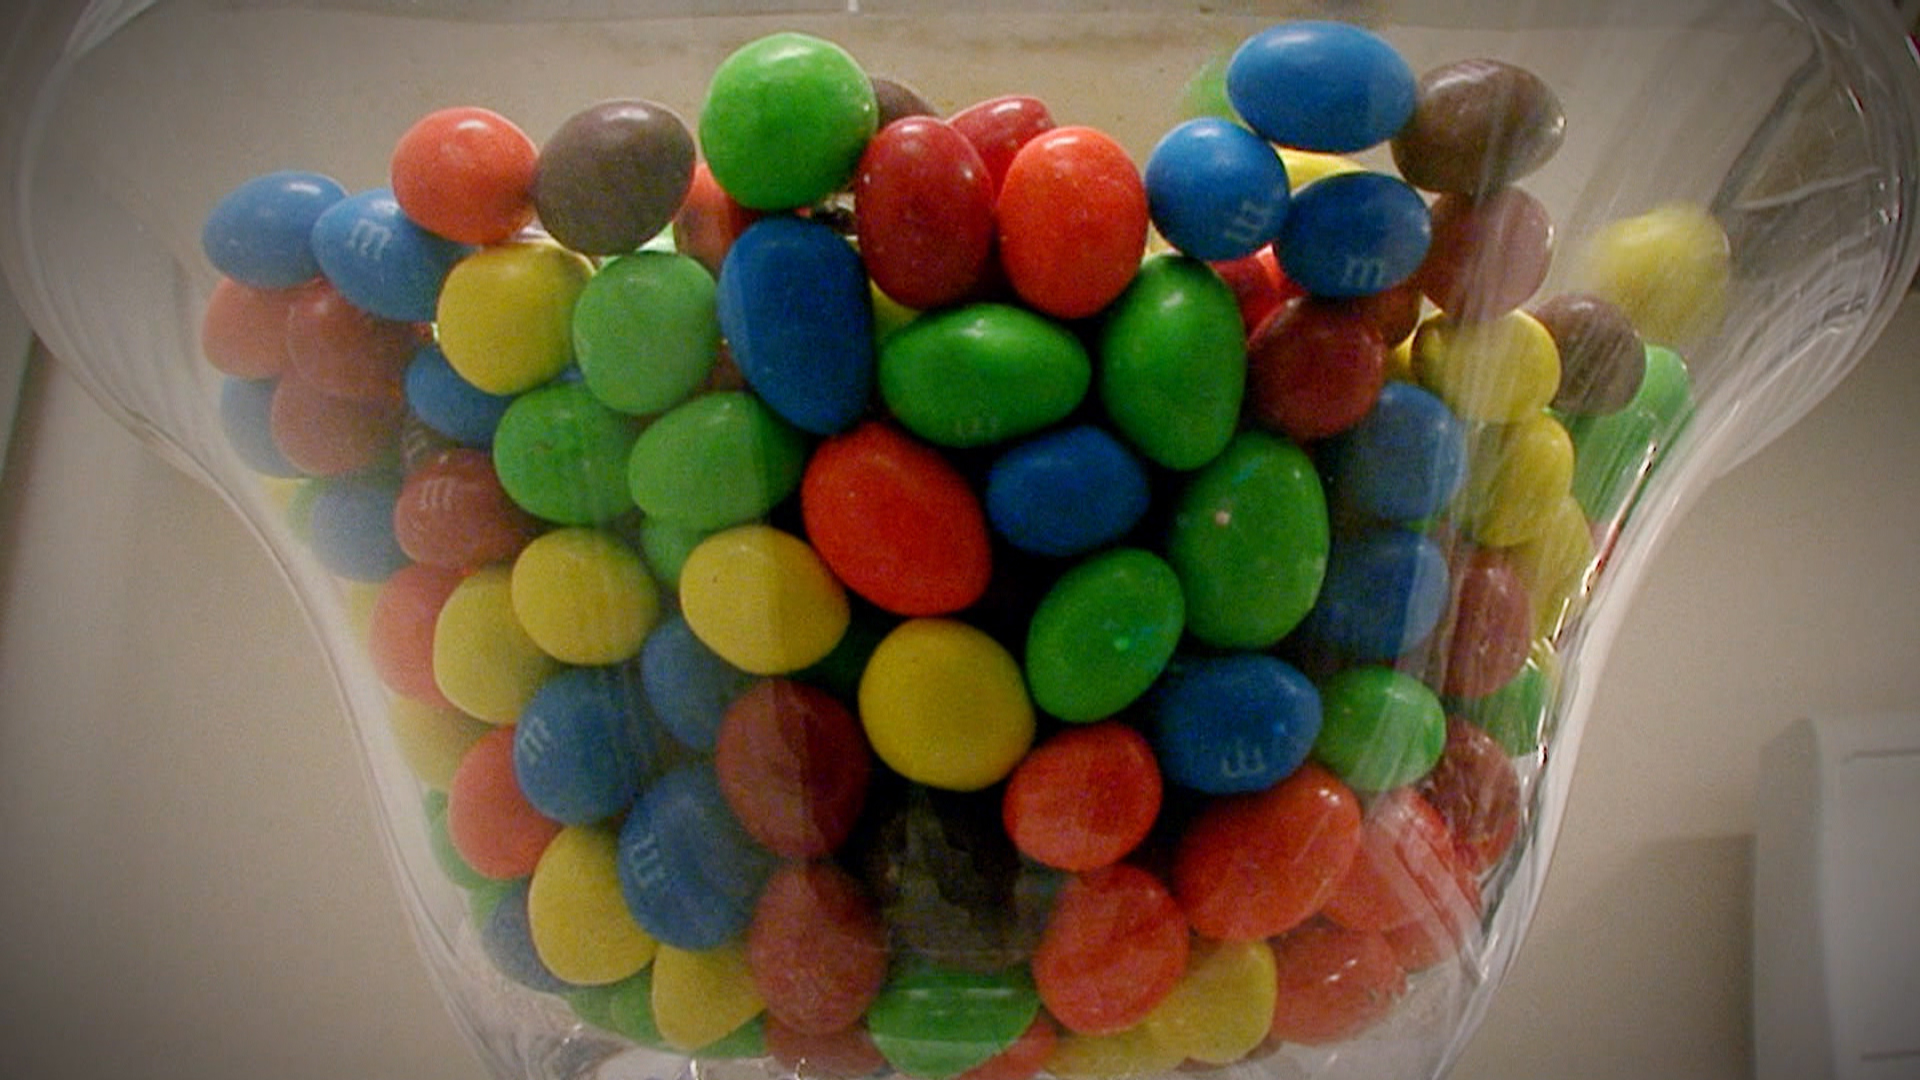 Concerned mom campaigns against artificial dyes in candy